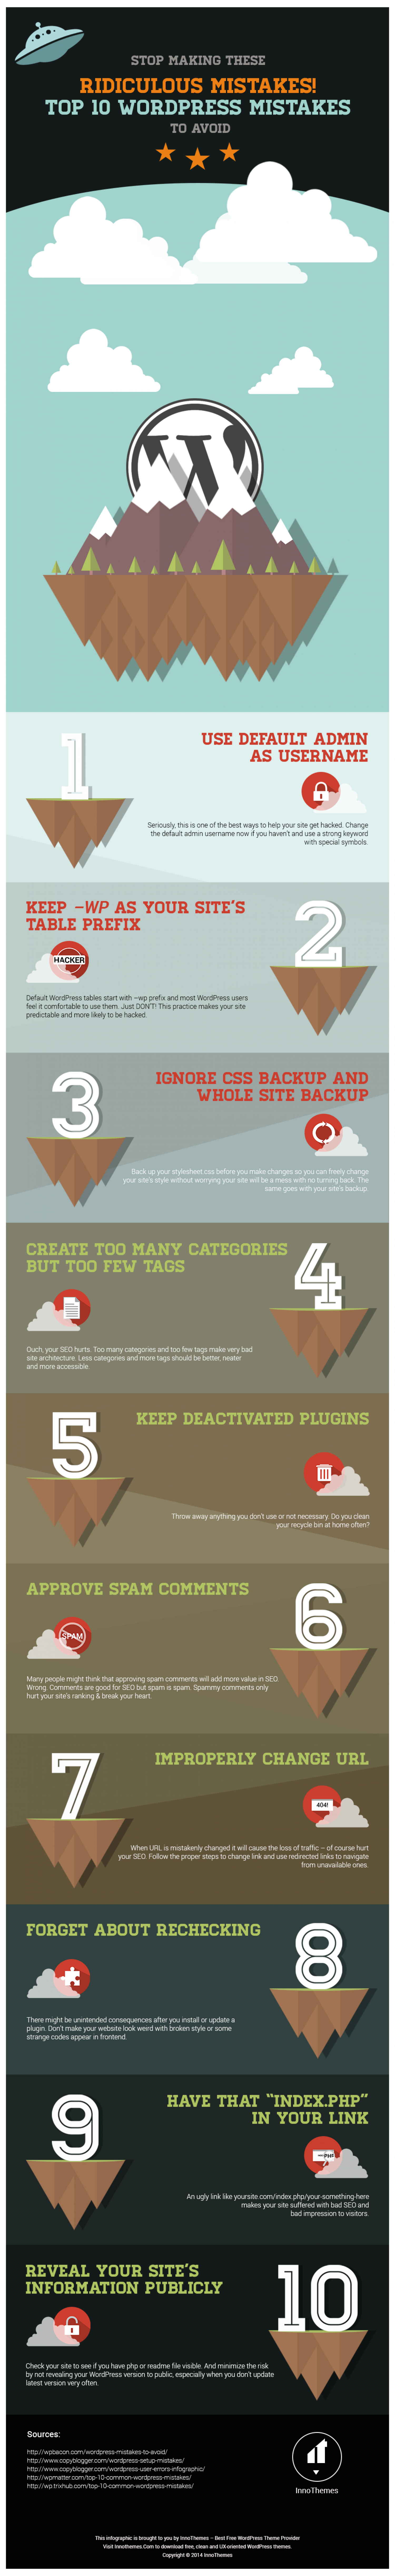 Top 10 WordPress Mistakes To Avoid Infographic